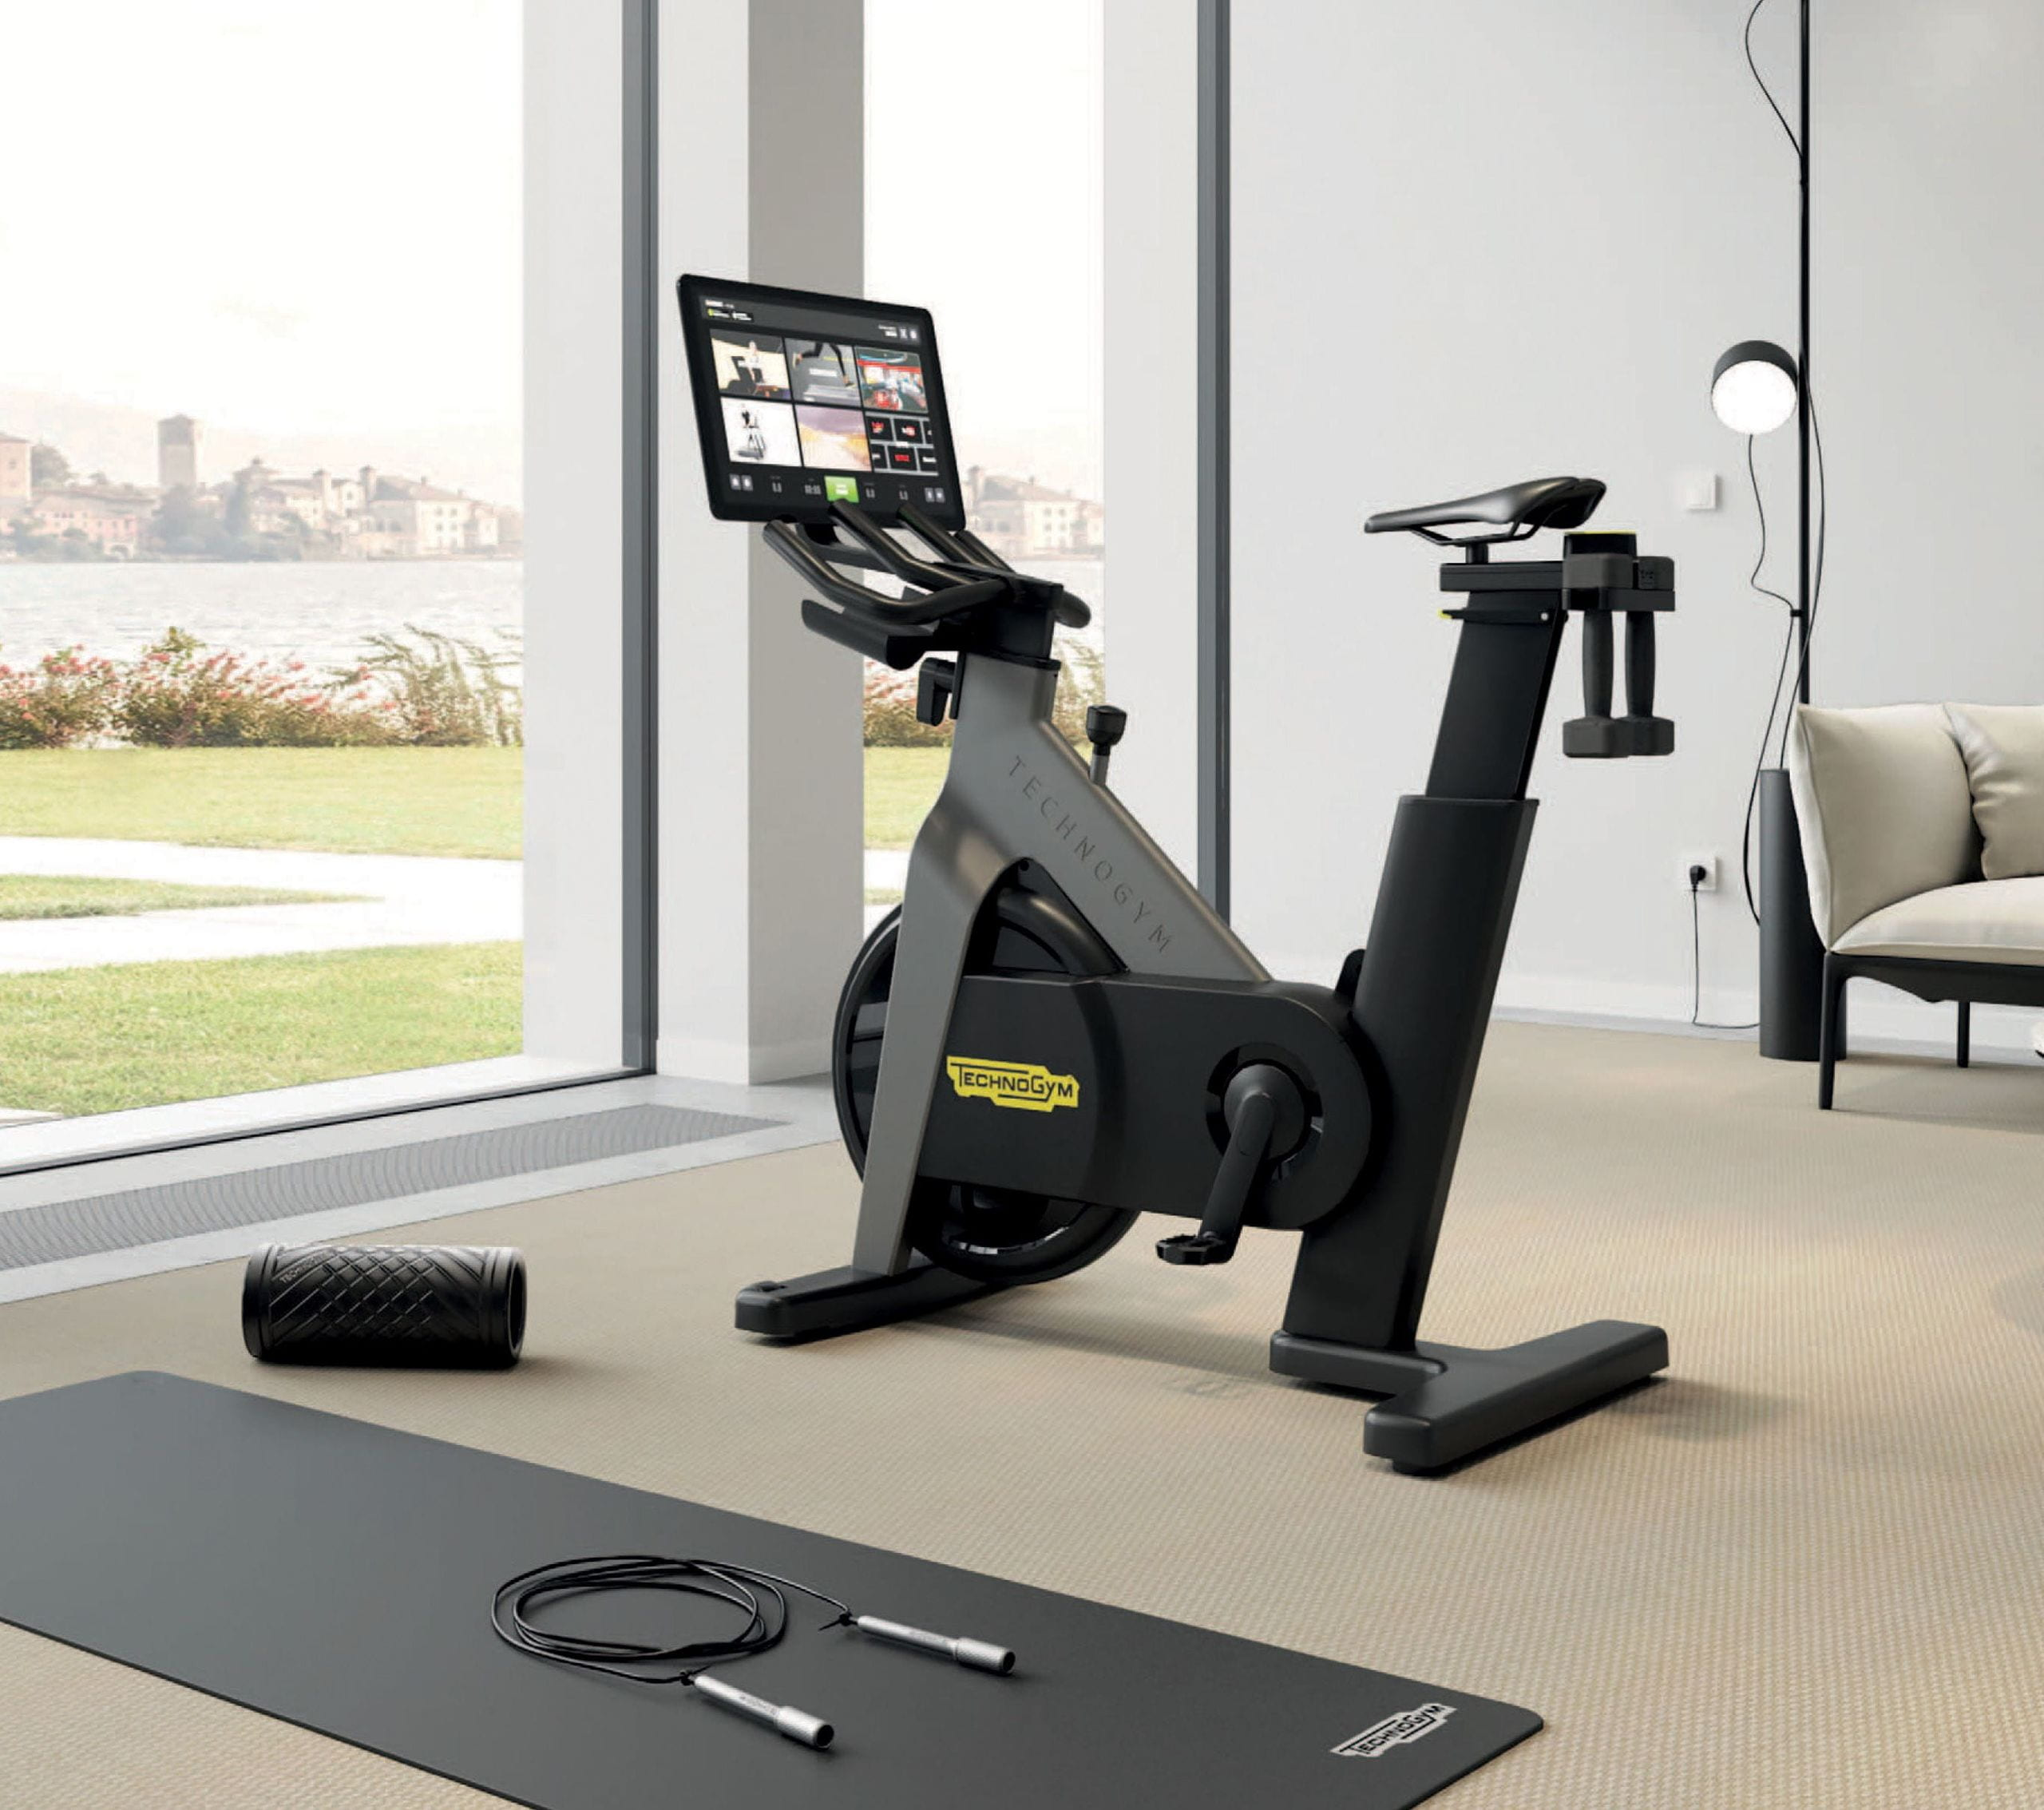 Technogym Bike home